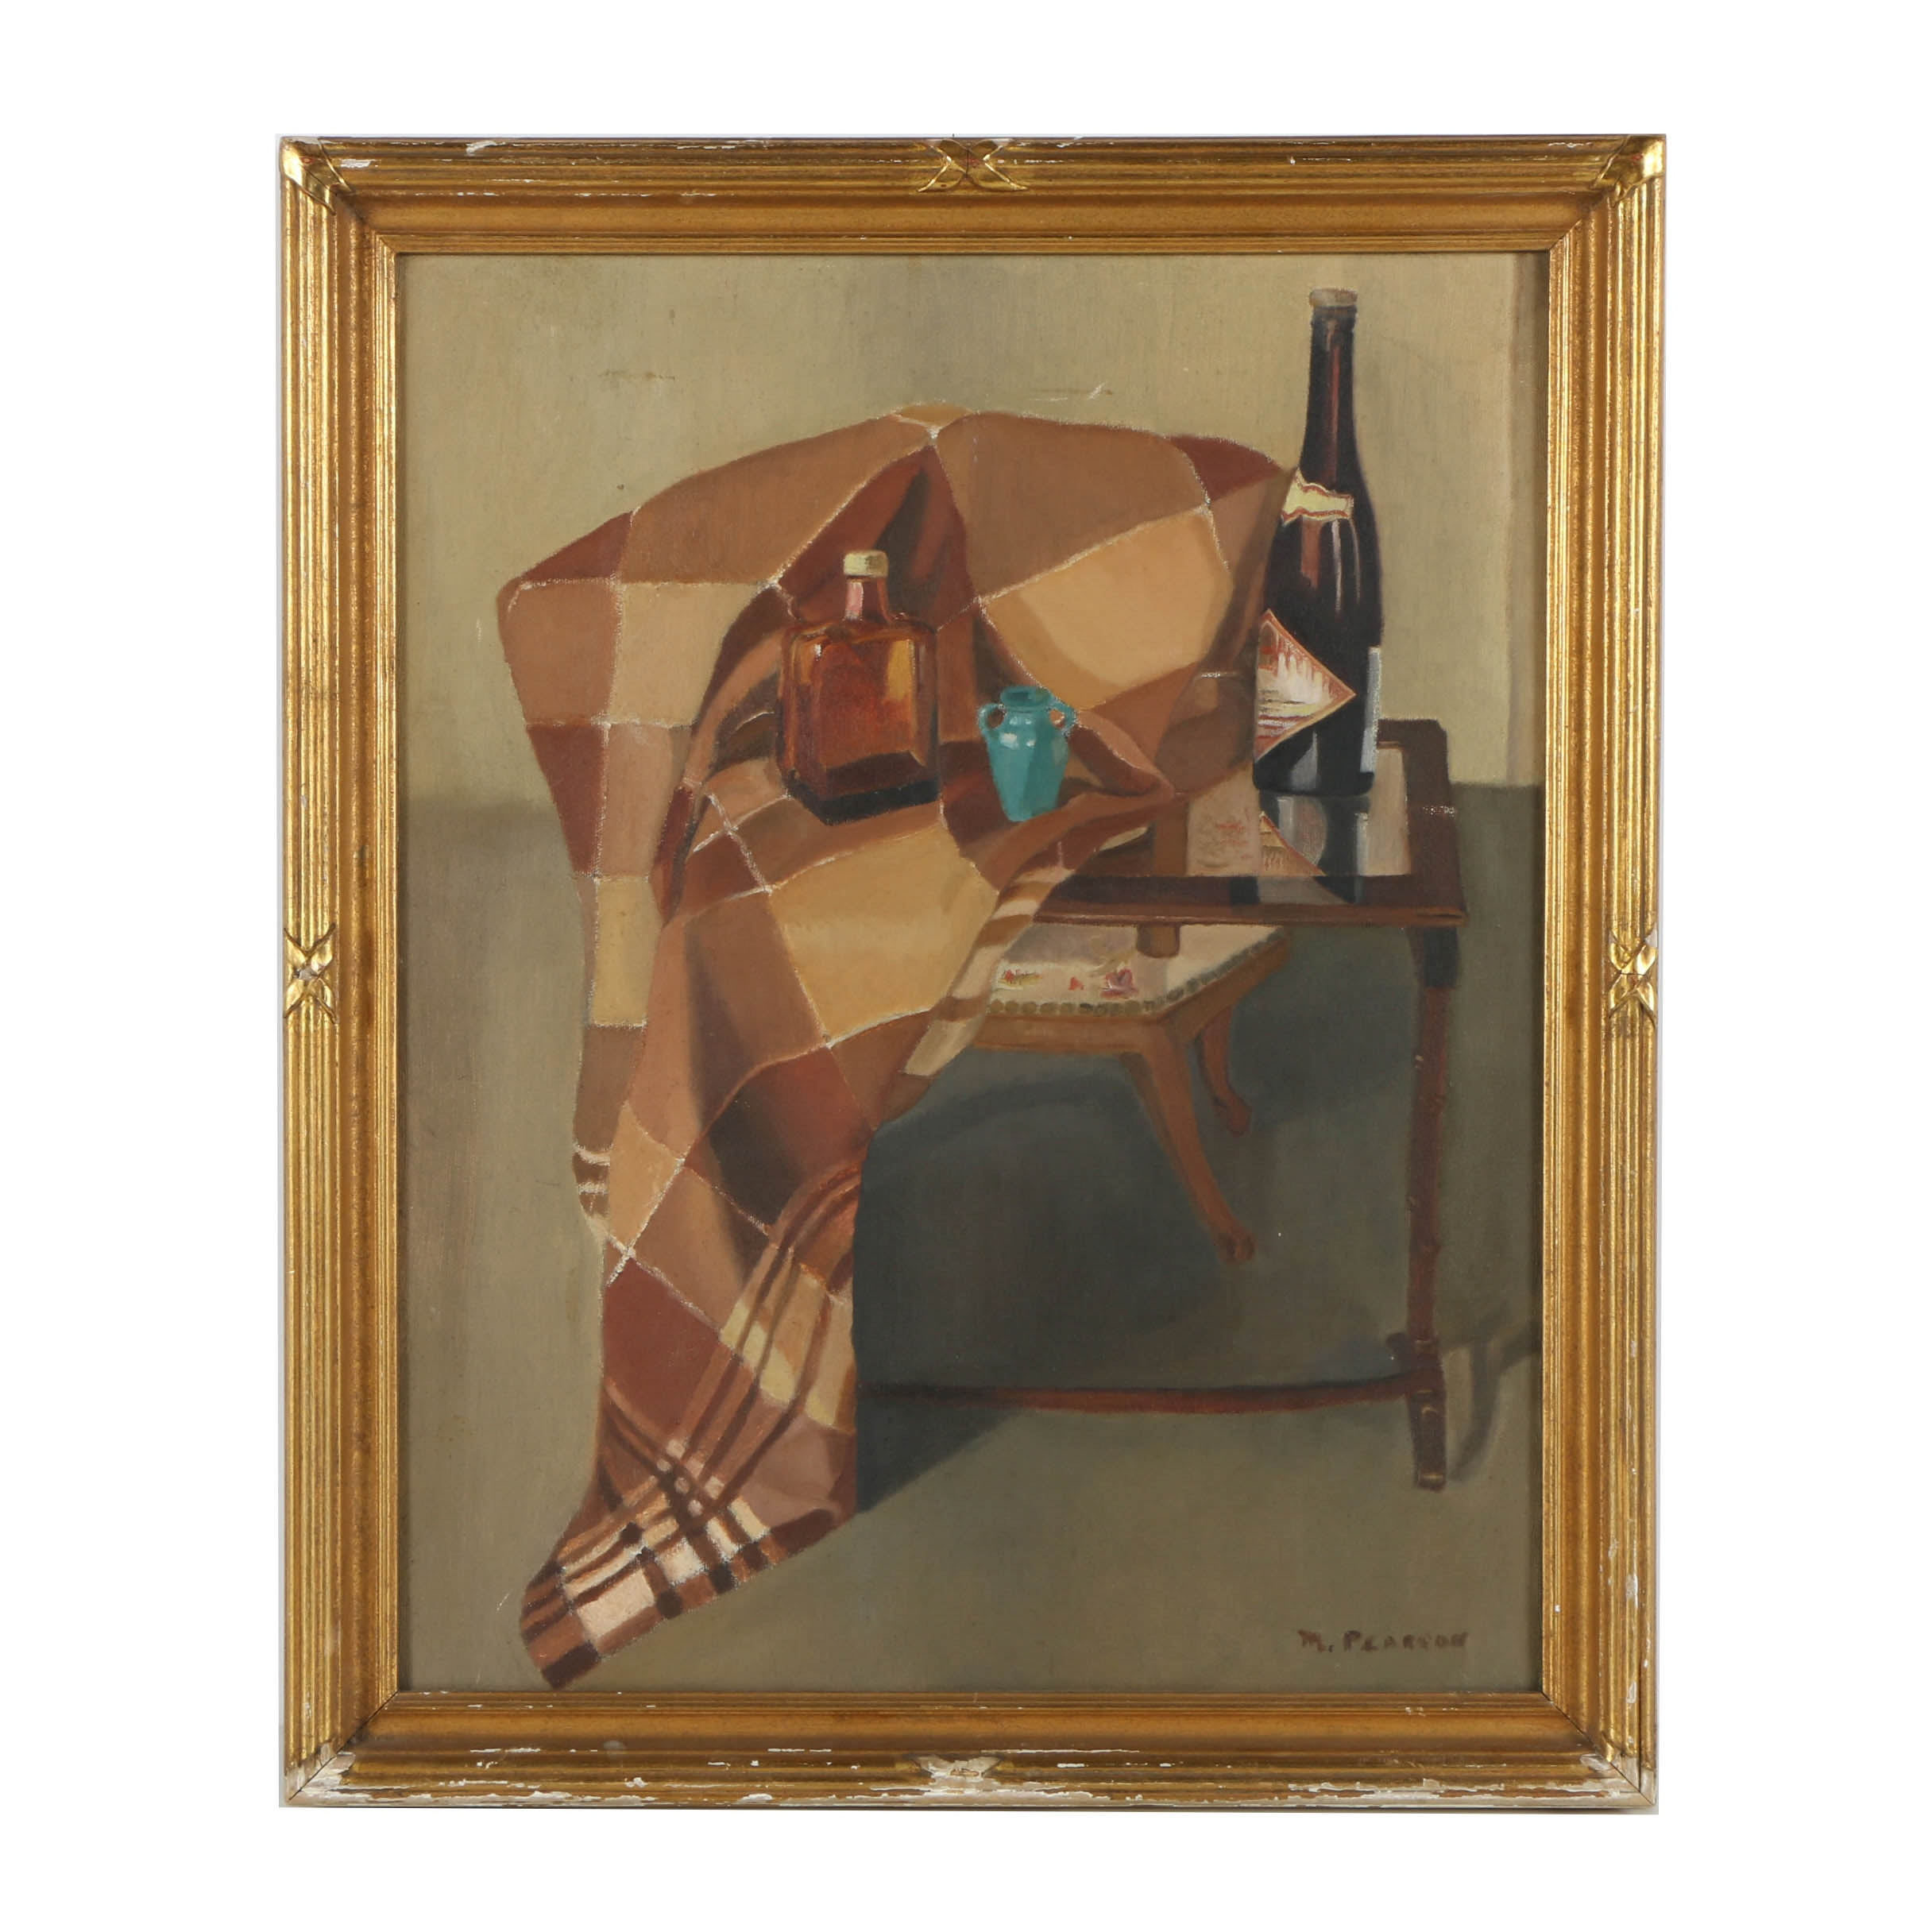 M. Pearson Oil Painting on Canvas of a Still-Life